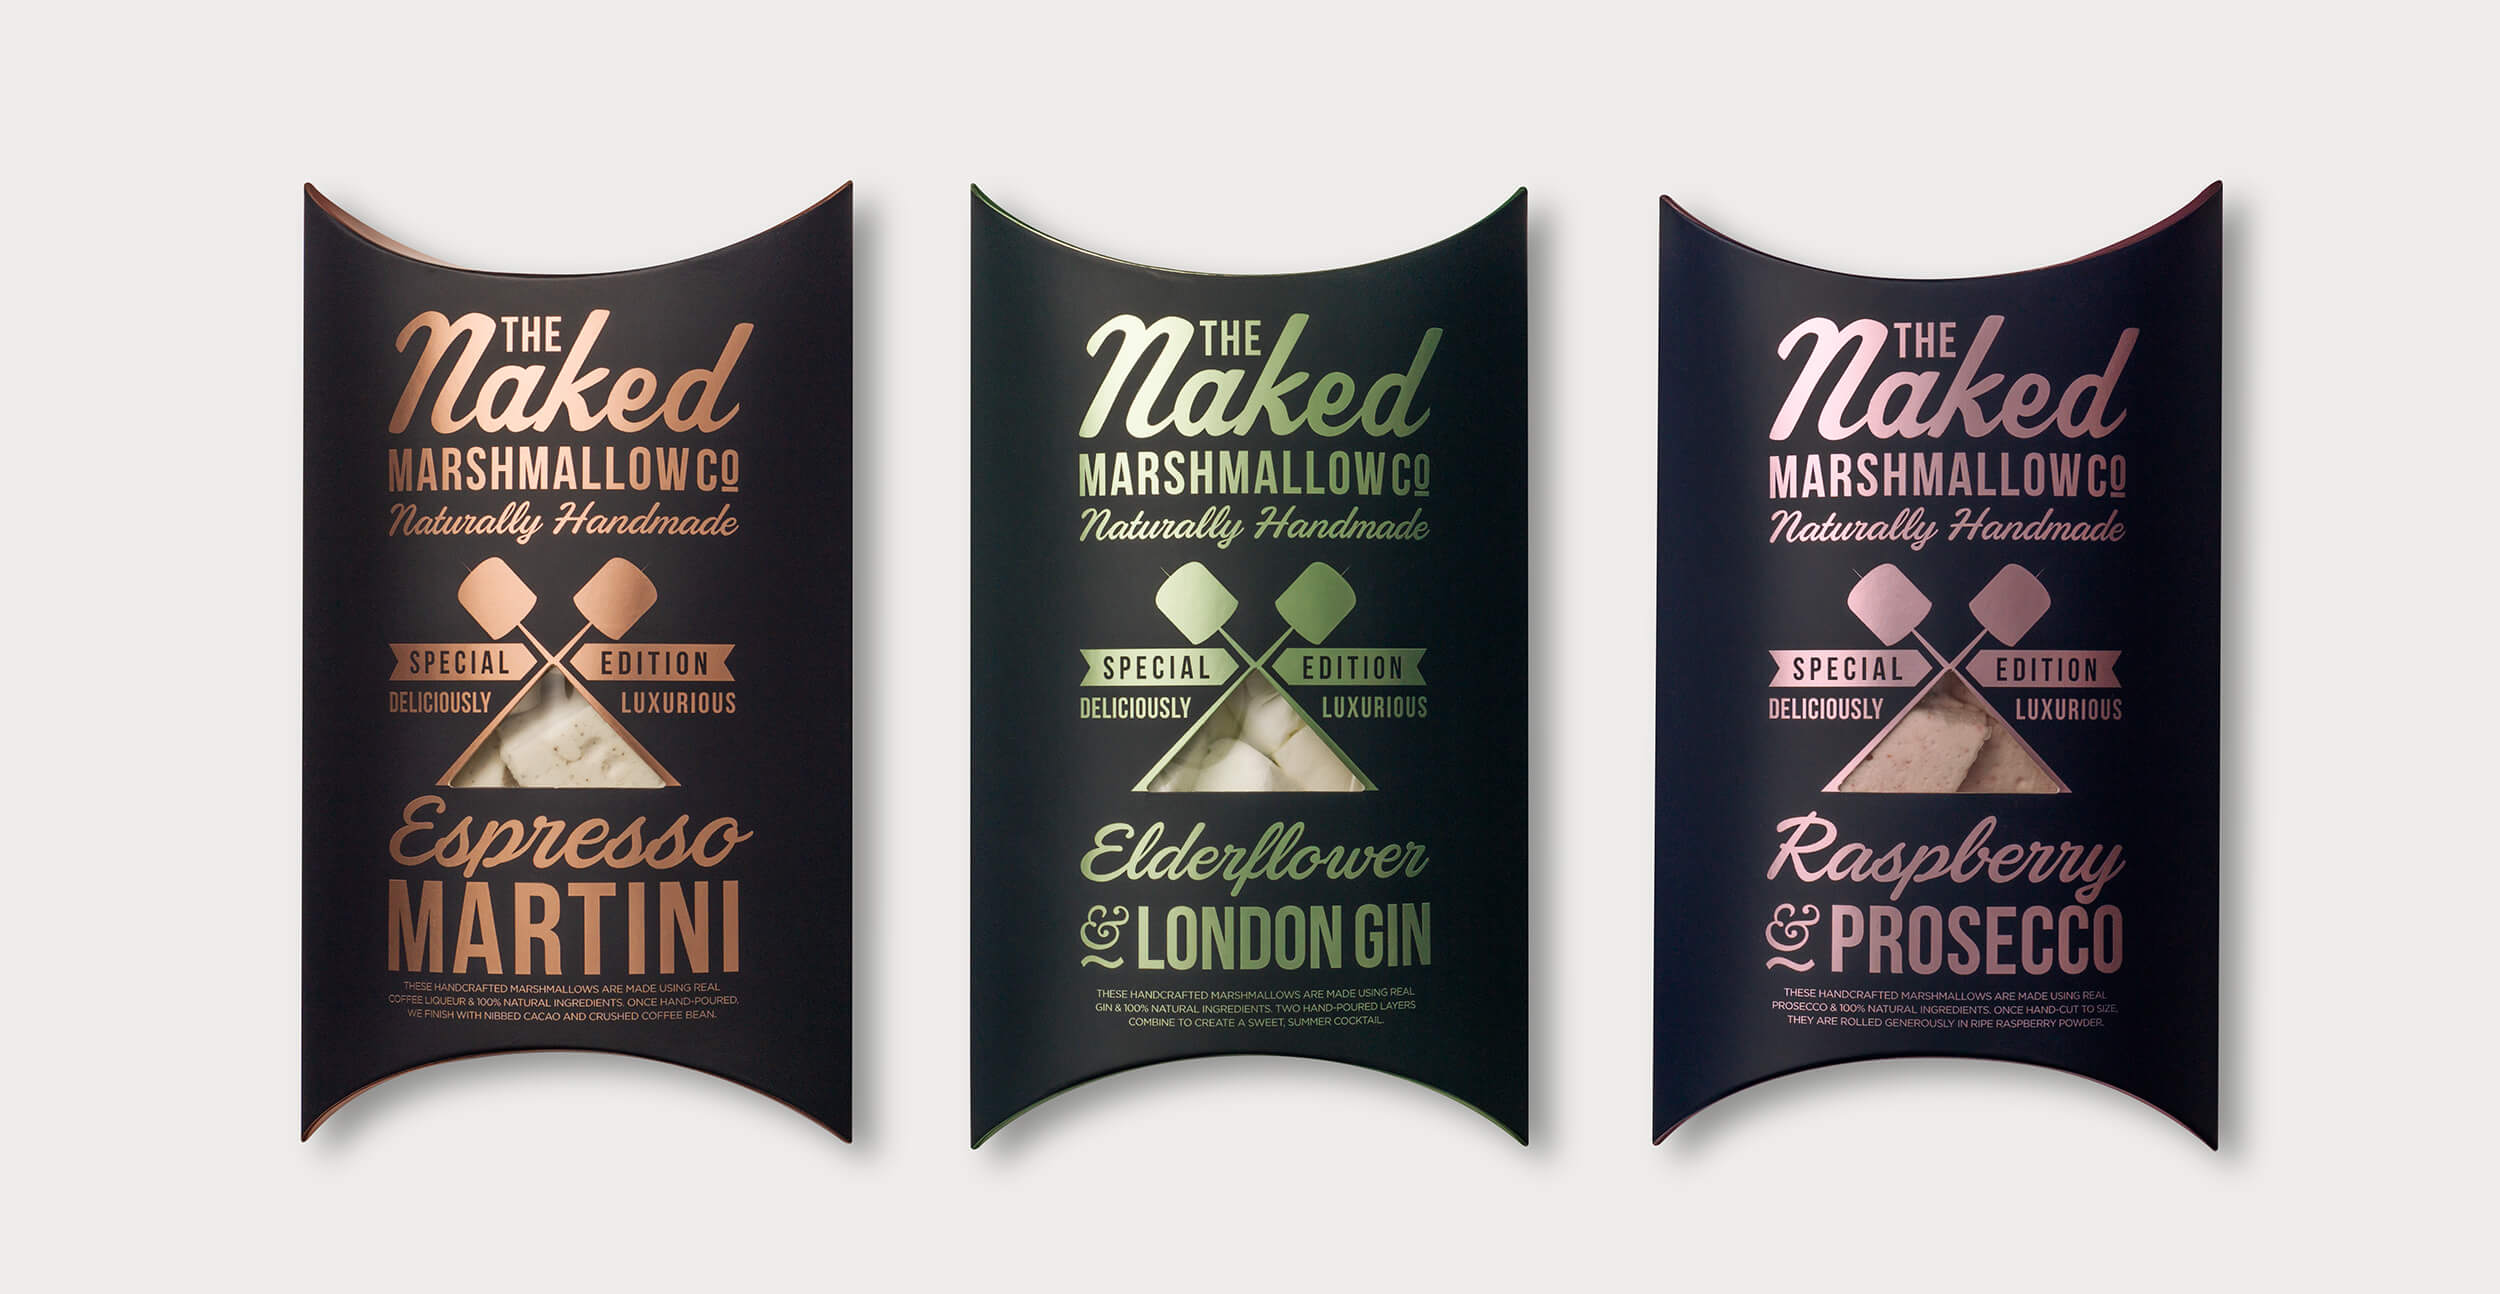 Branding and packaging design for confectionary brand The Naked Marshmallow Co by Design Happy London - Brand Mark design